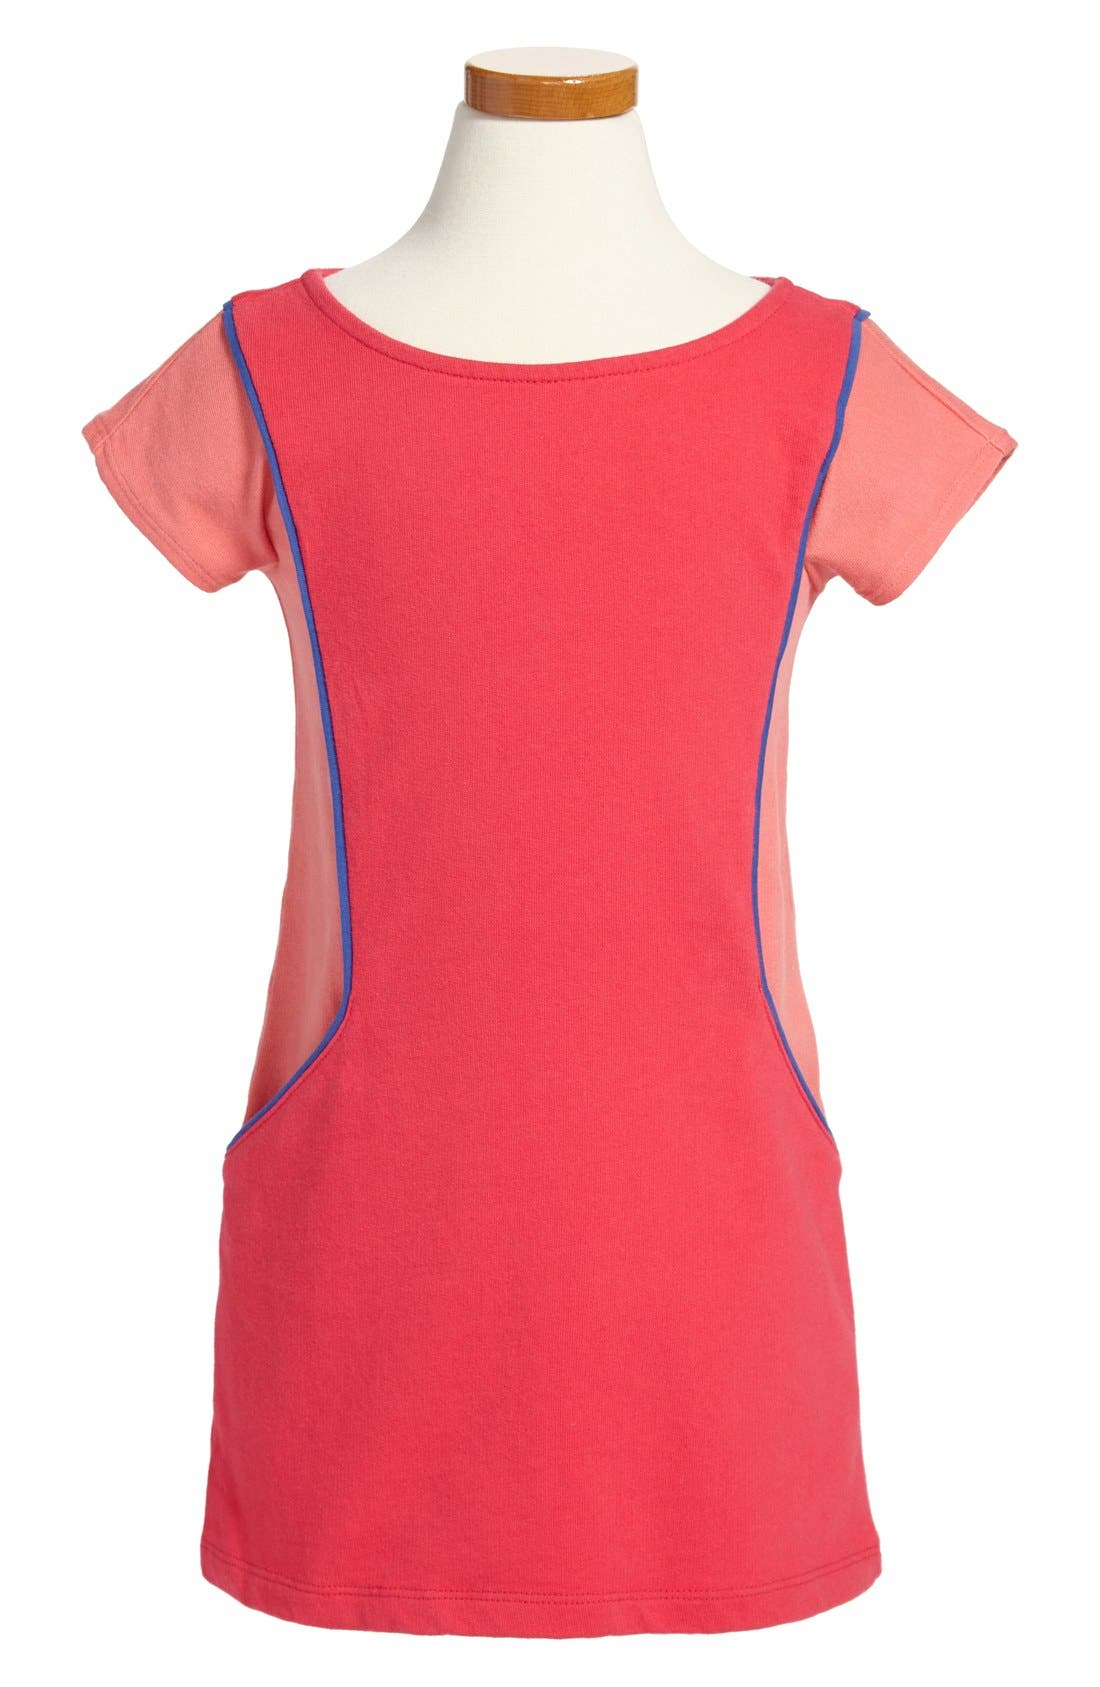 Main Image - Tea Collection 'Rabat' Colorblock Dress (Toddler Girls)